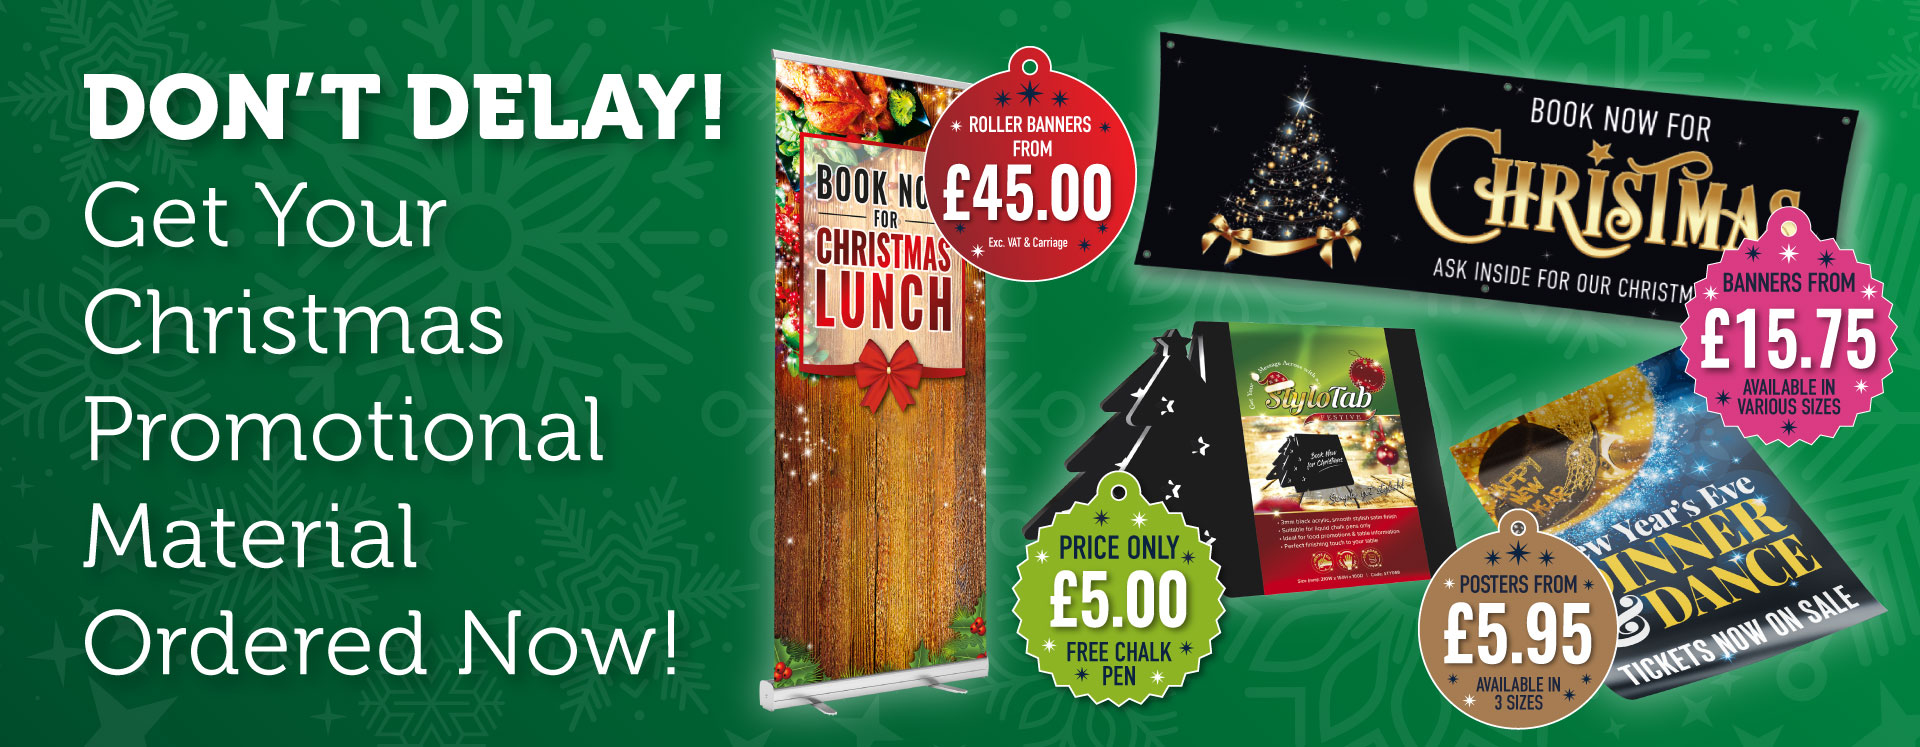 Get Your Christmas Promotional Material Now